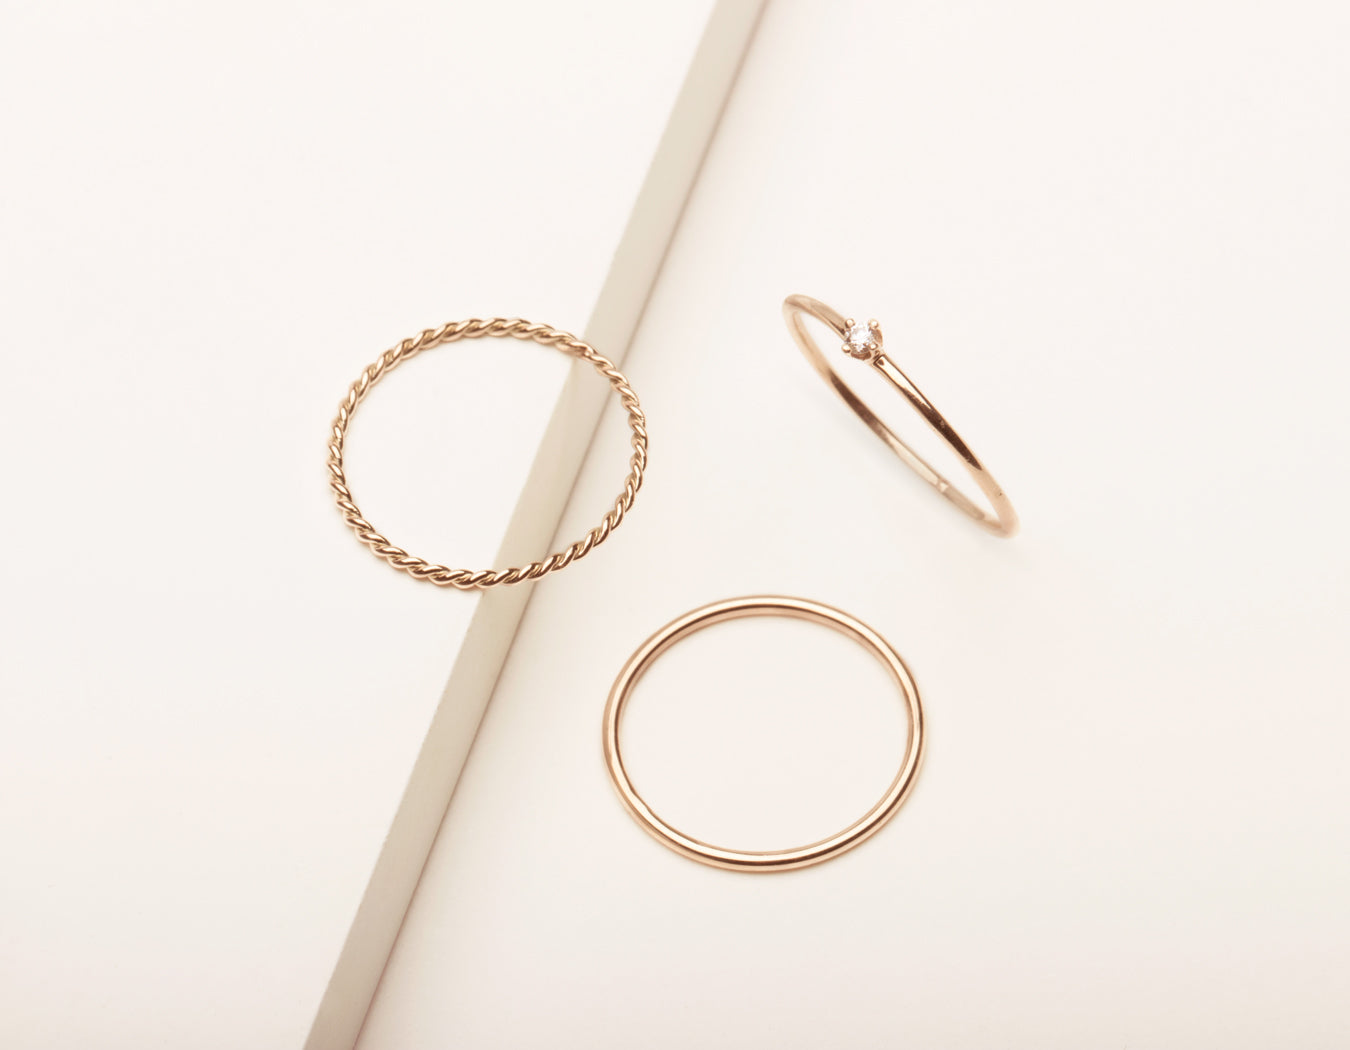 Vrai and Oro simple classic Trio Bundle Rings 14k solid gold Skinny Stacking Round Diamond Stacker and Twist Ring, 14K Rose Gold